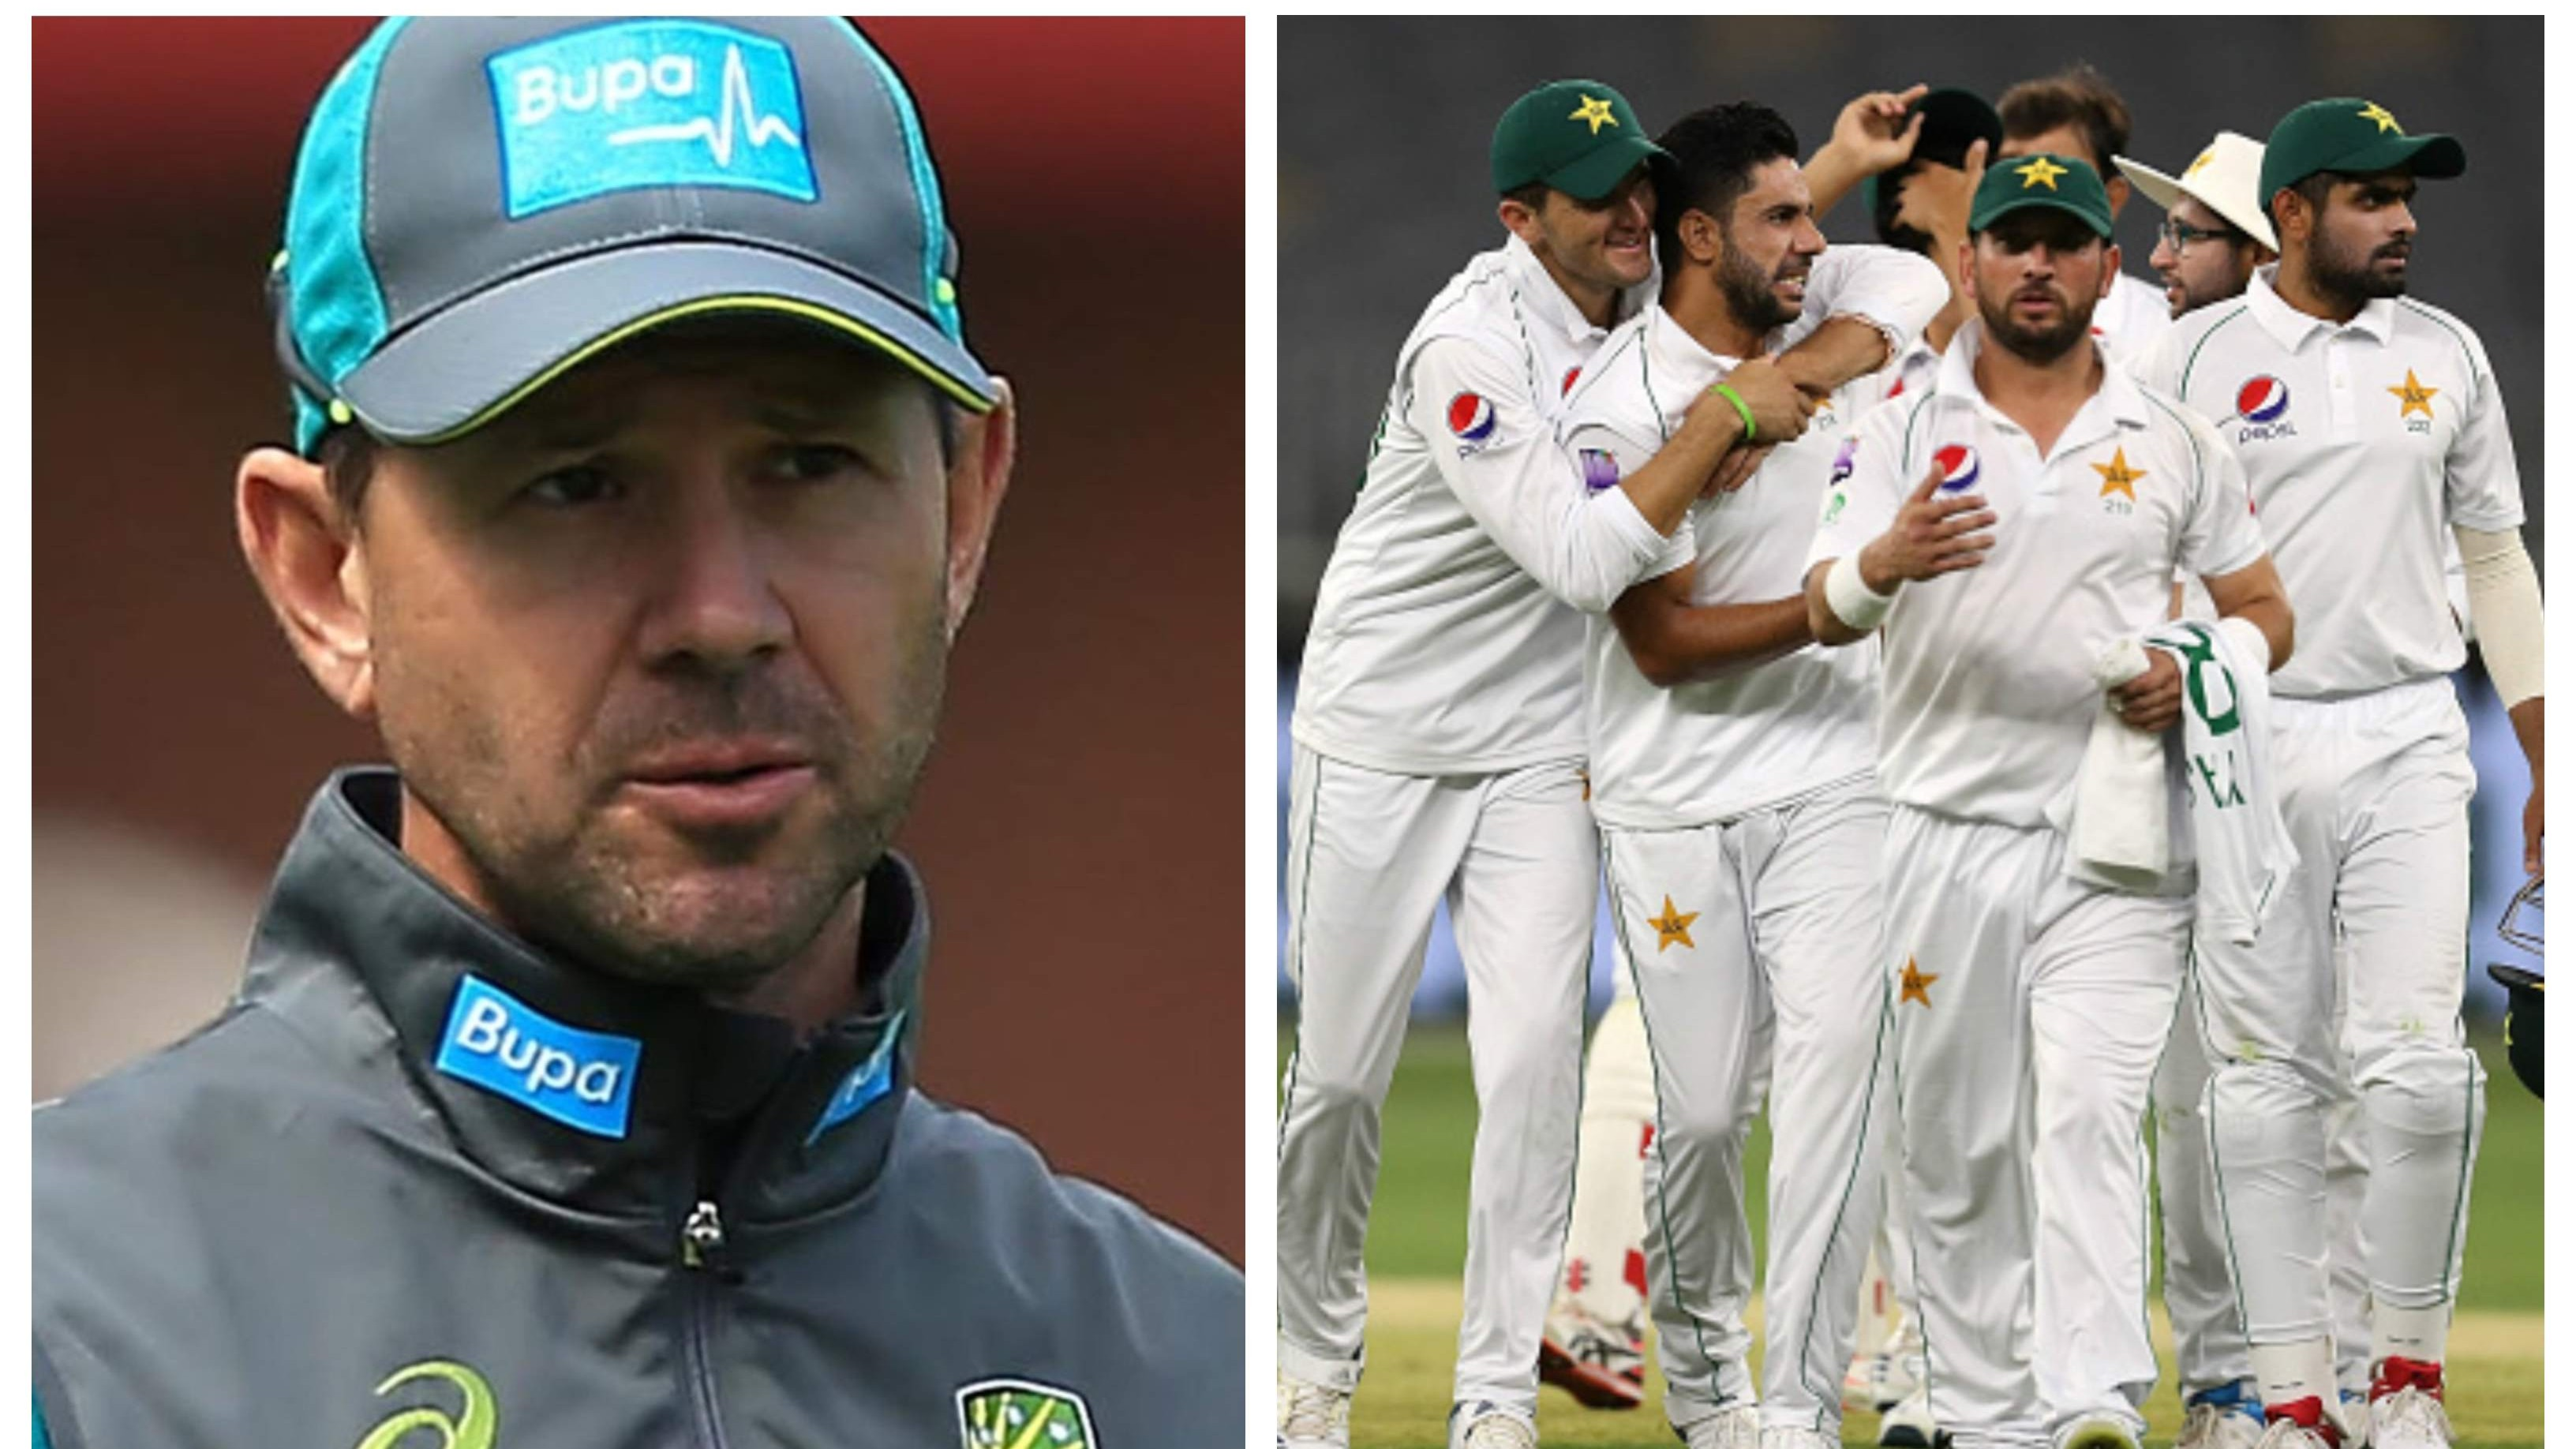 """AUS v PAK 2019: """"Pakistan won't be a pushover"""", Ponting issues warning for Australia ahead of 1st Test"""